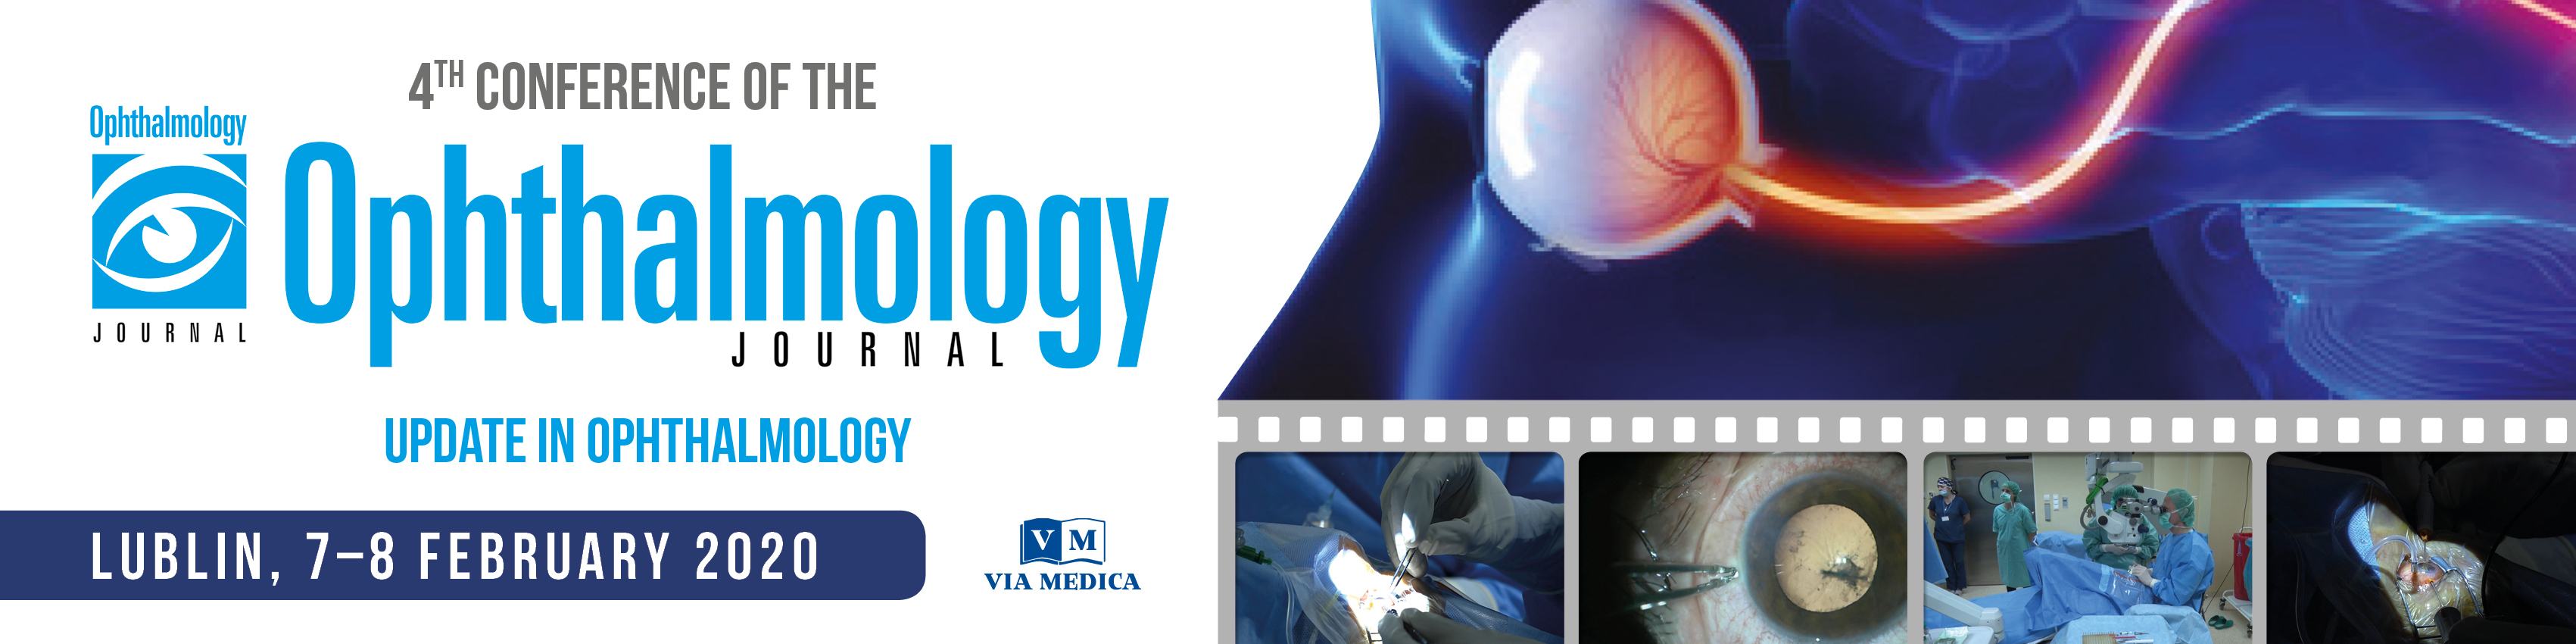 IV Konferencja Ophthalmology Journal